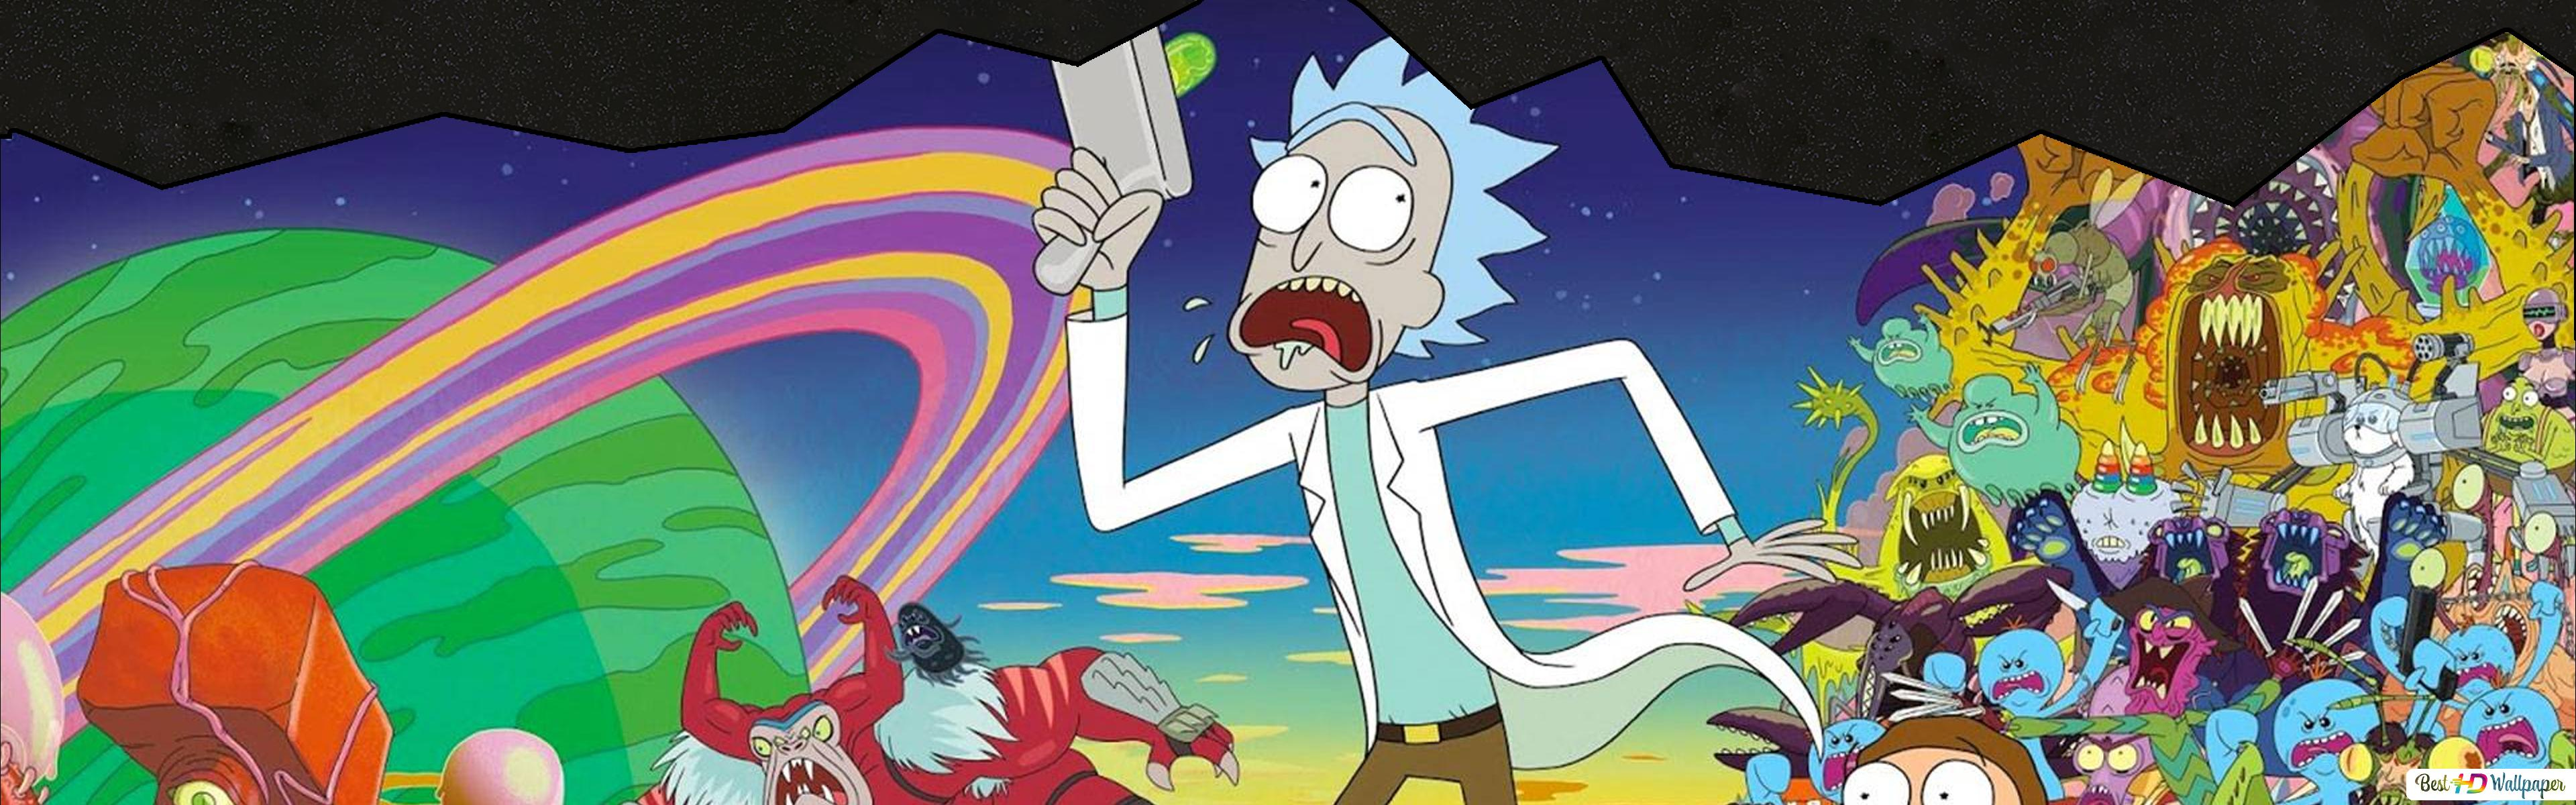 Crazy Rick Hd Wallpaper Download